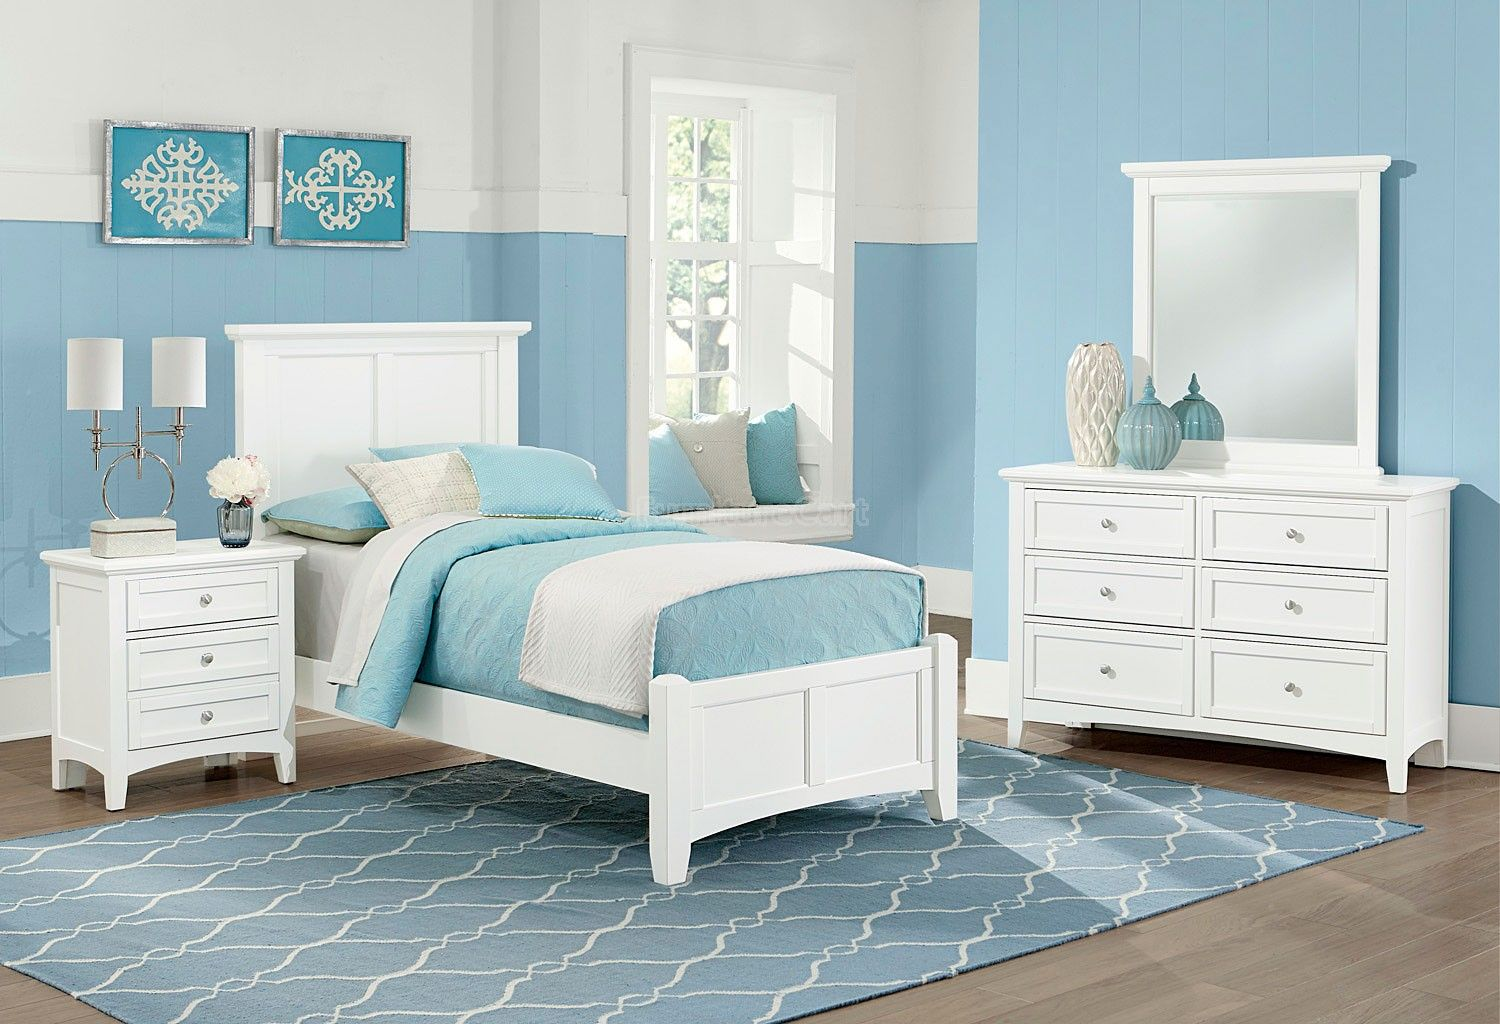 Bonanza Youth Mansion Bedroom Set (White) Twin bedroom